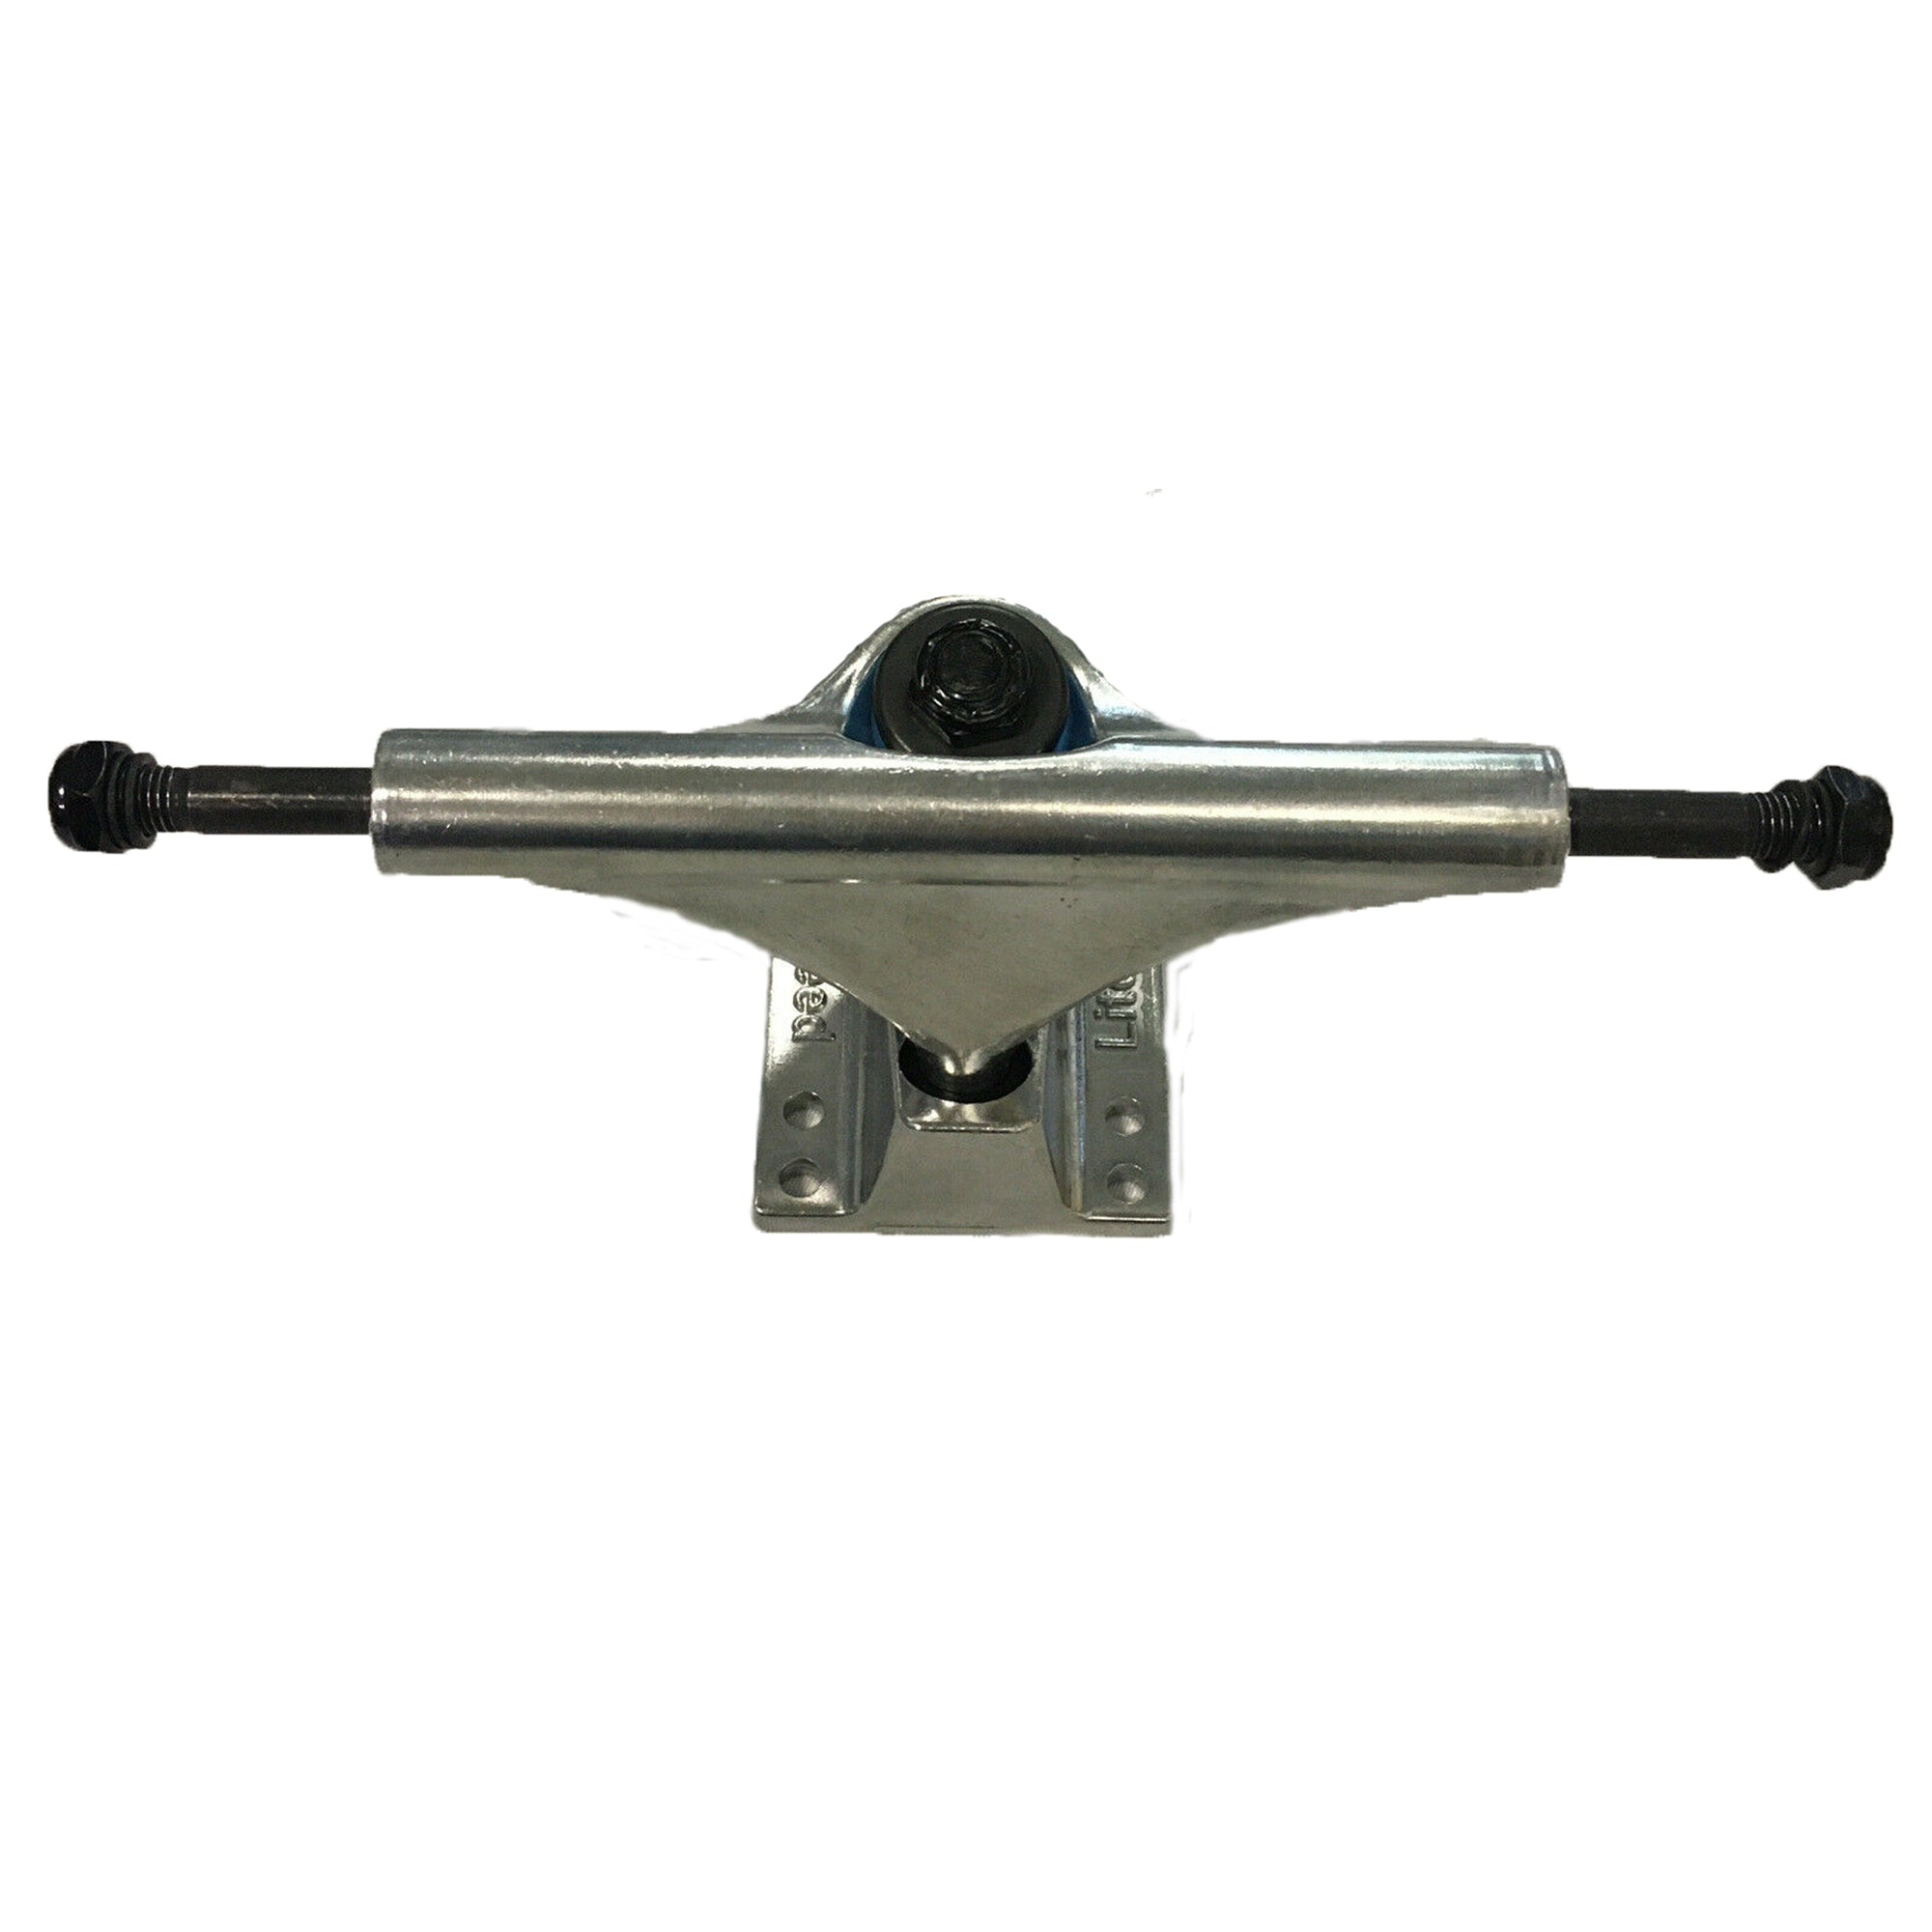 Litezpeed 5.25 Polished Metal Trucks